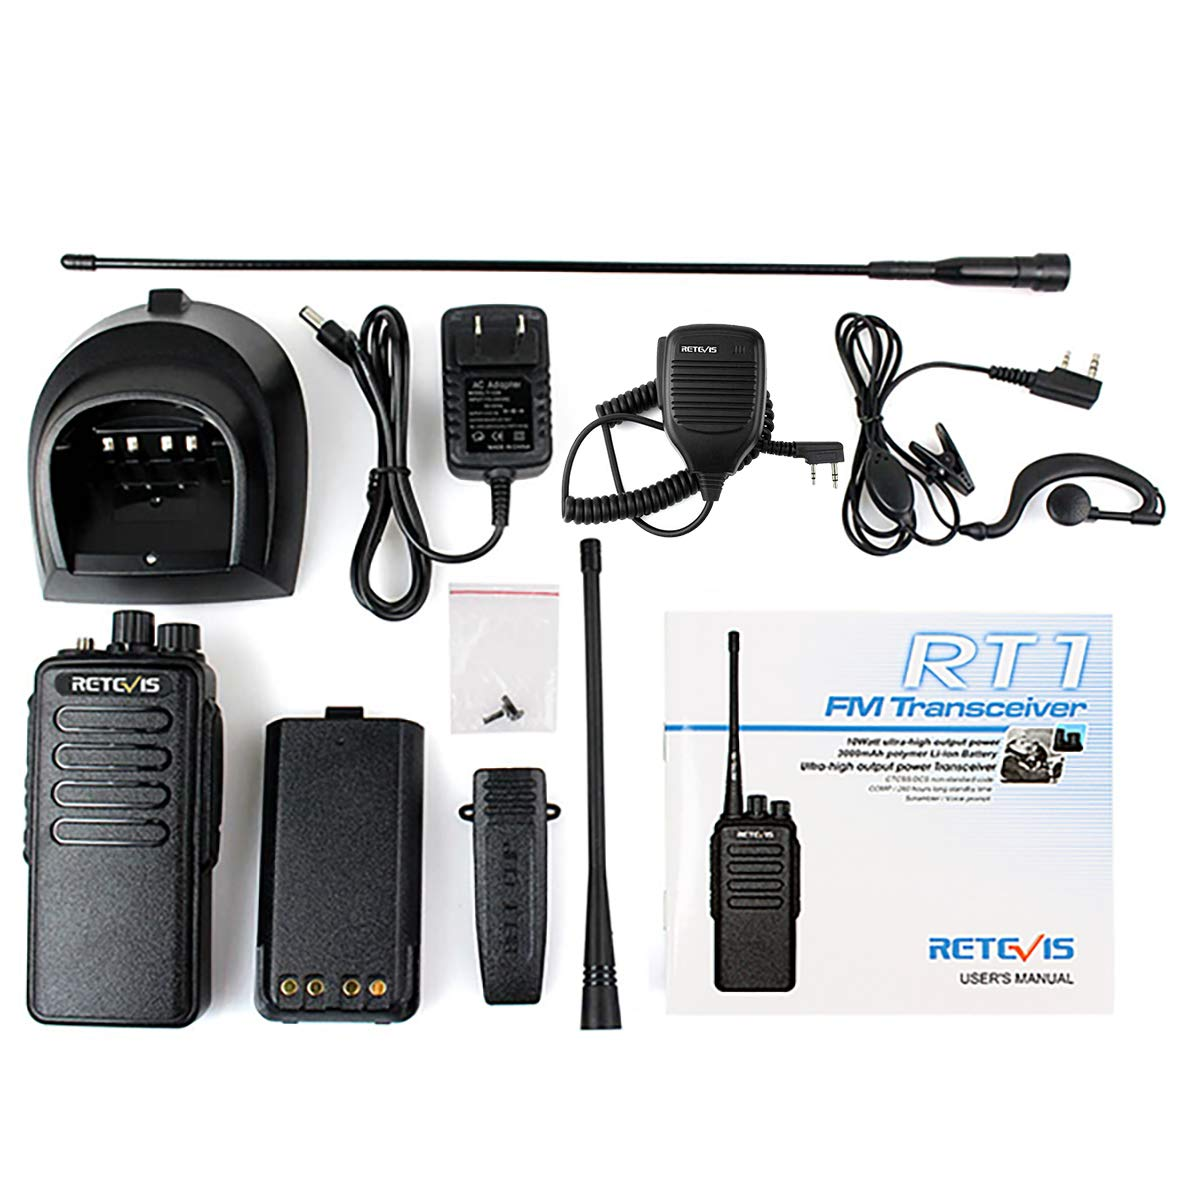 2 Pack LYSB00PJXLX4U-SPRTSEQIP Retevis RT1 High-Power UHF Rechargeable Two-Way Radio 70CM 16CH VOX Scrambler Handheld Transceiver with Earpiece and Speaker Mic